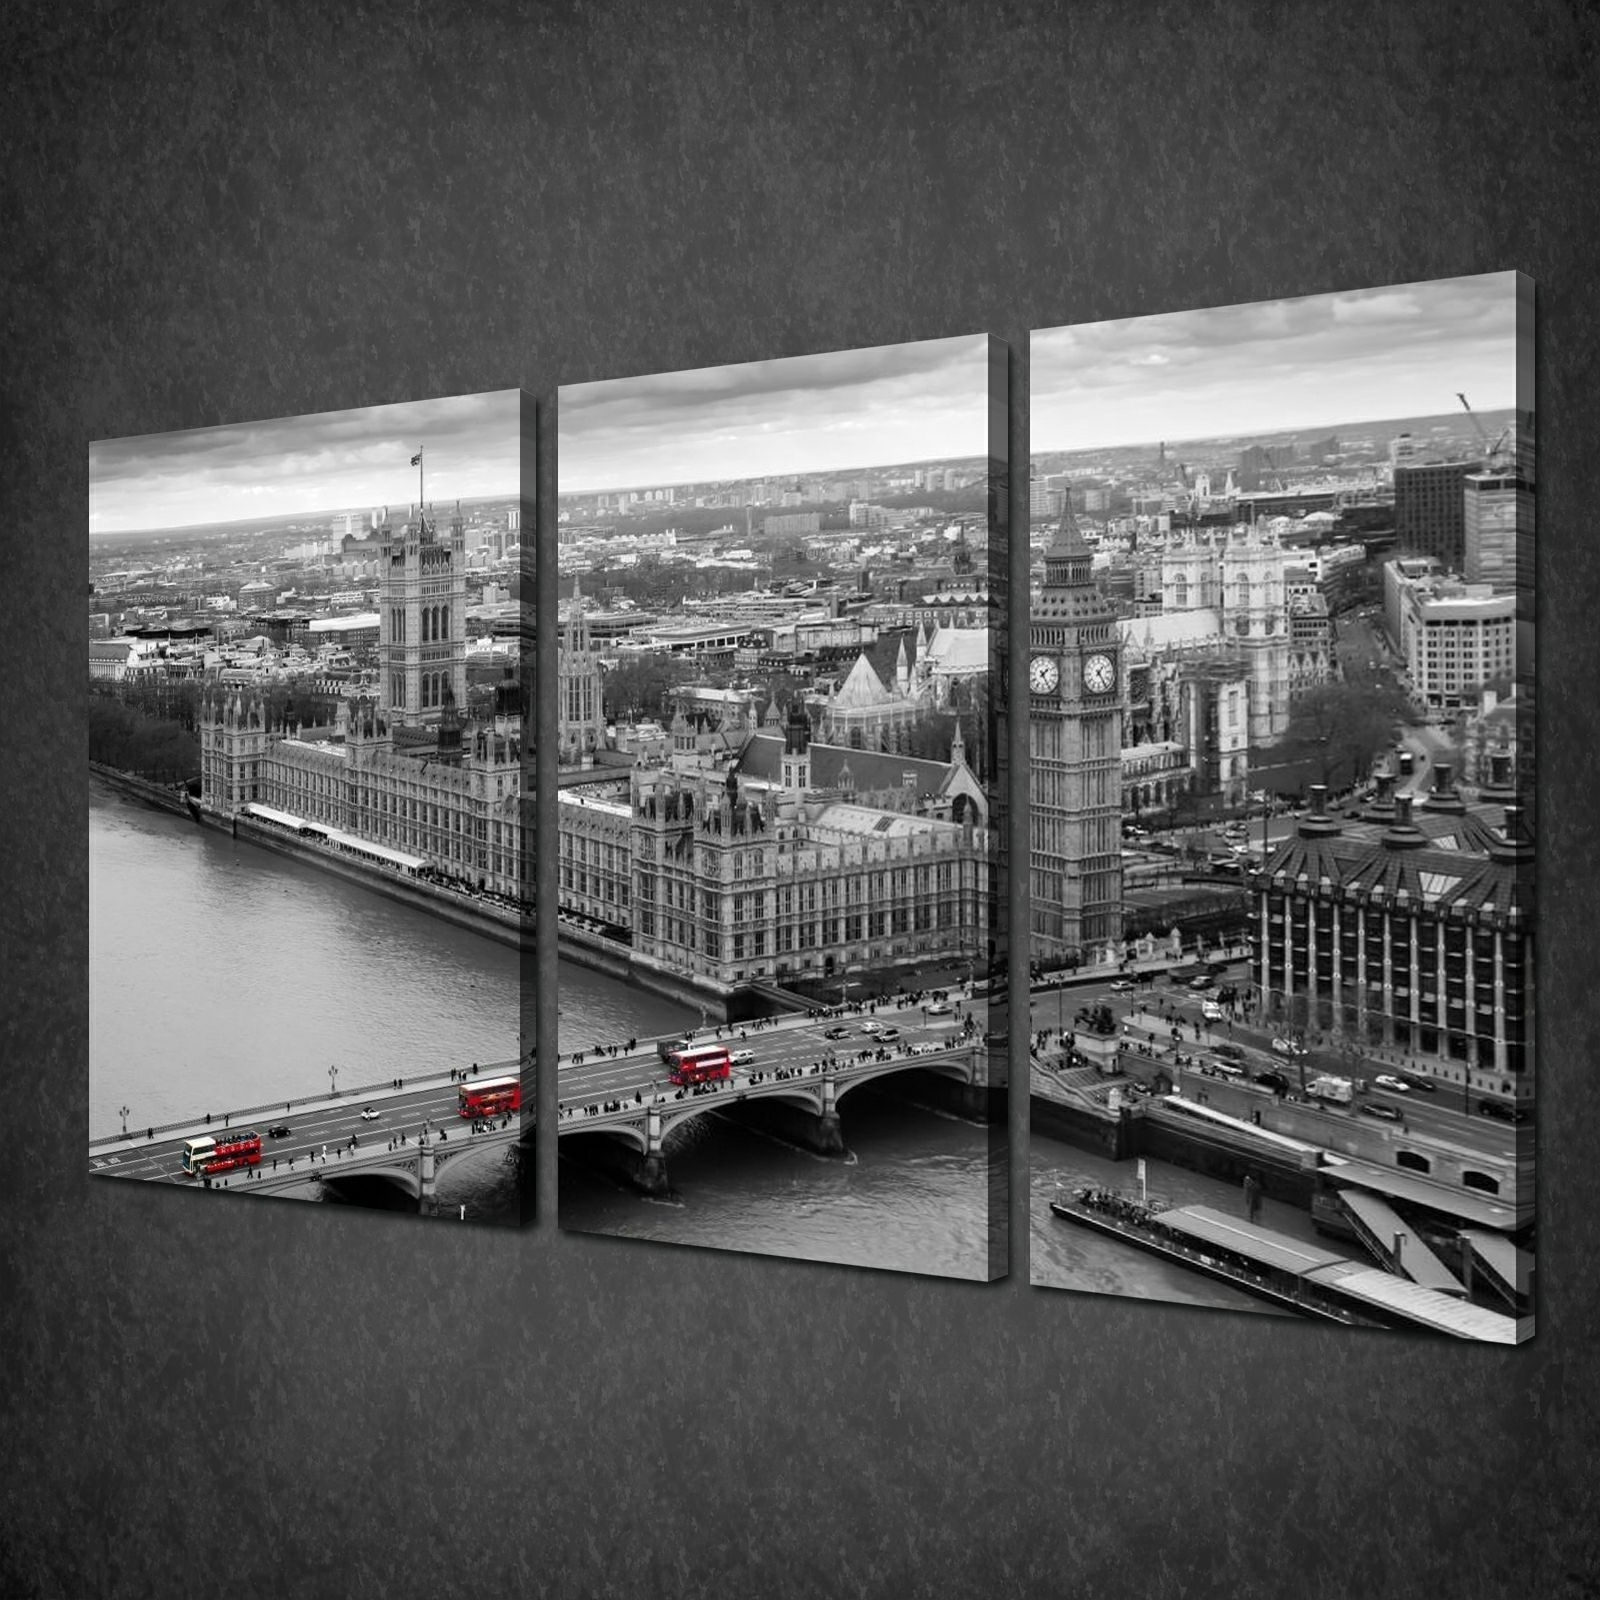 London Wall Art Unique Wall Art London – Wall Decoration Ideas With Most Popular London Wall Art (View 9 of 20)